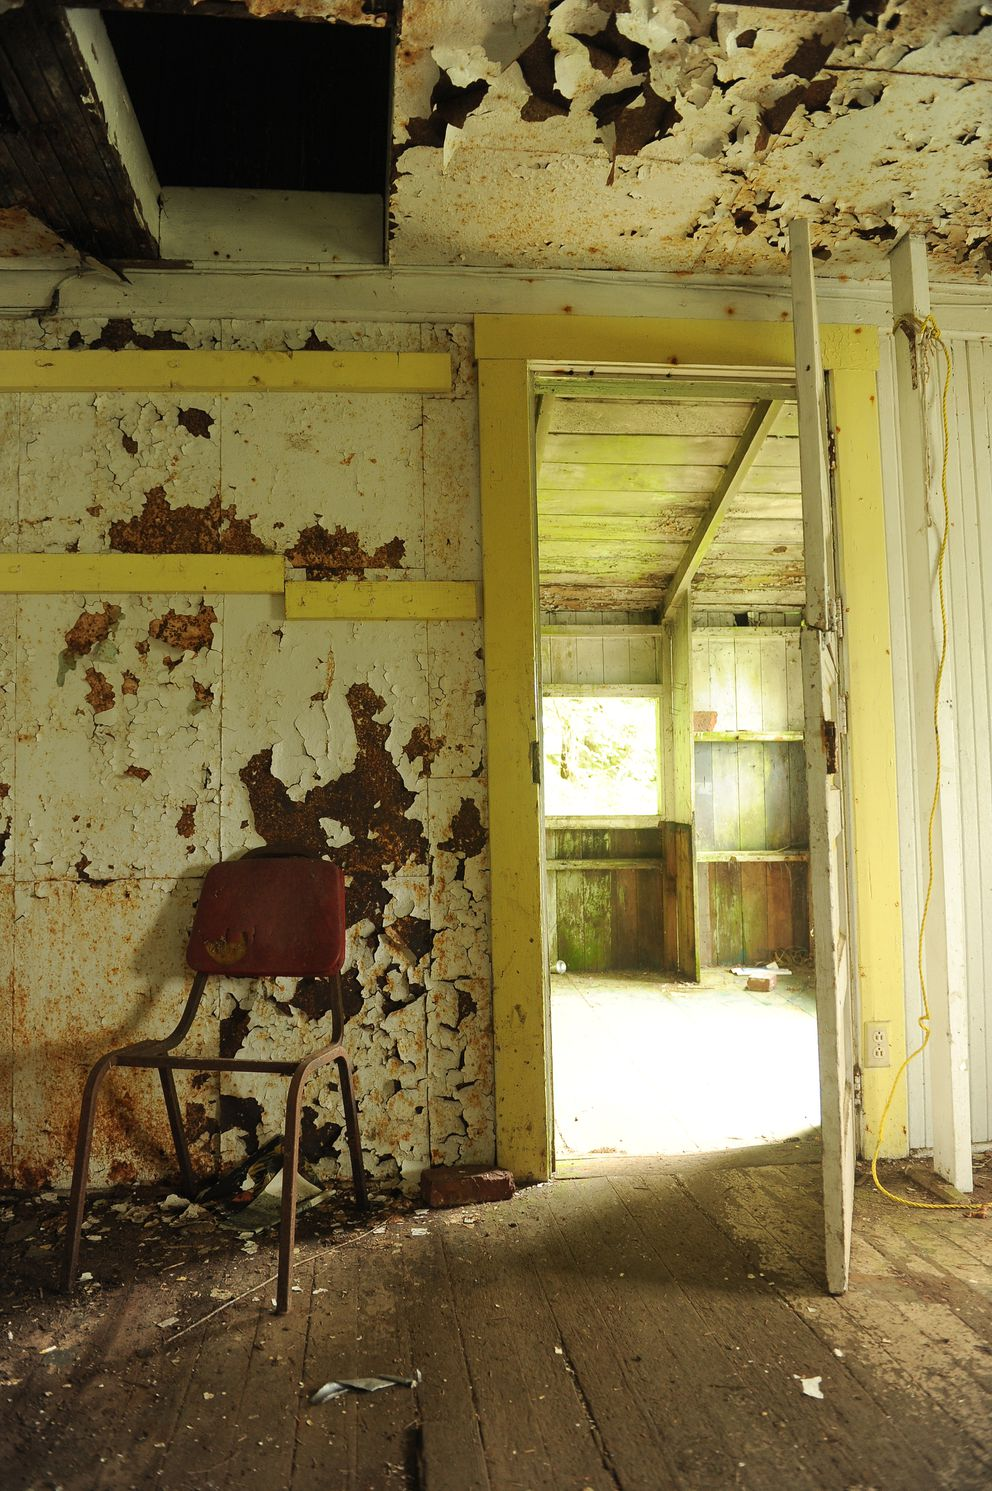 Paint peels off the walls and ceiling in a cannery outbuilding. (Bob Hallinen / ADN)